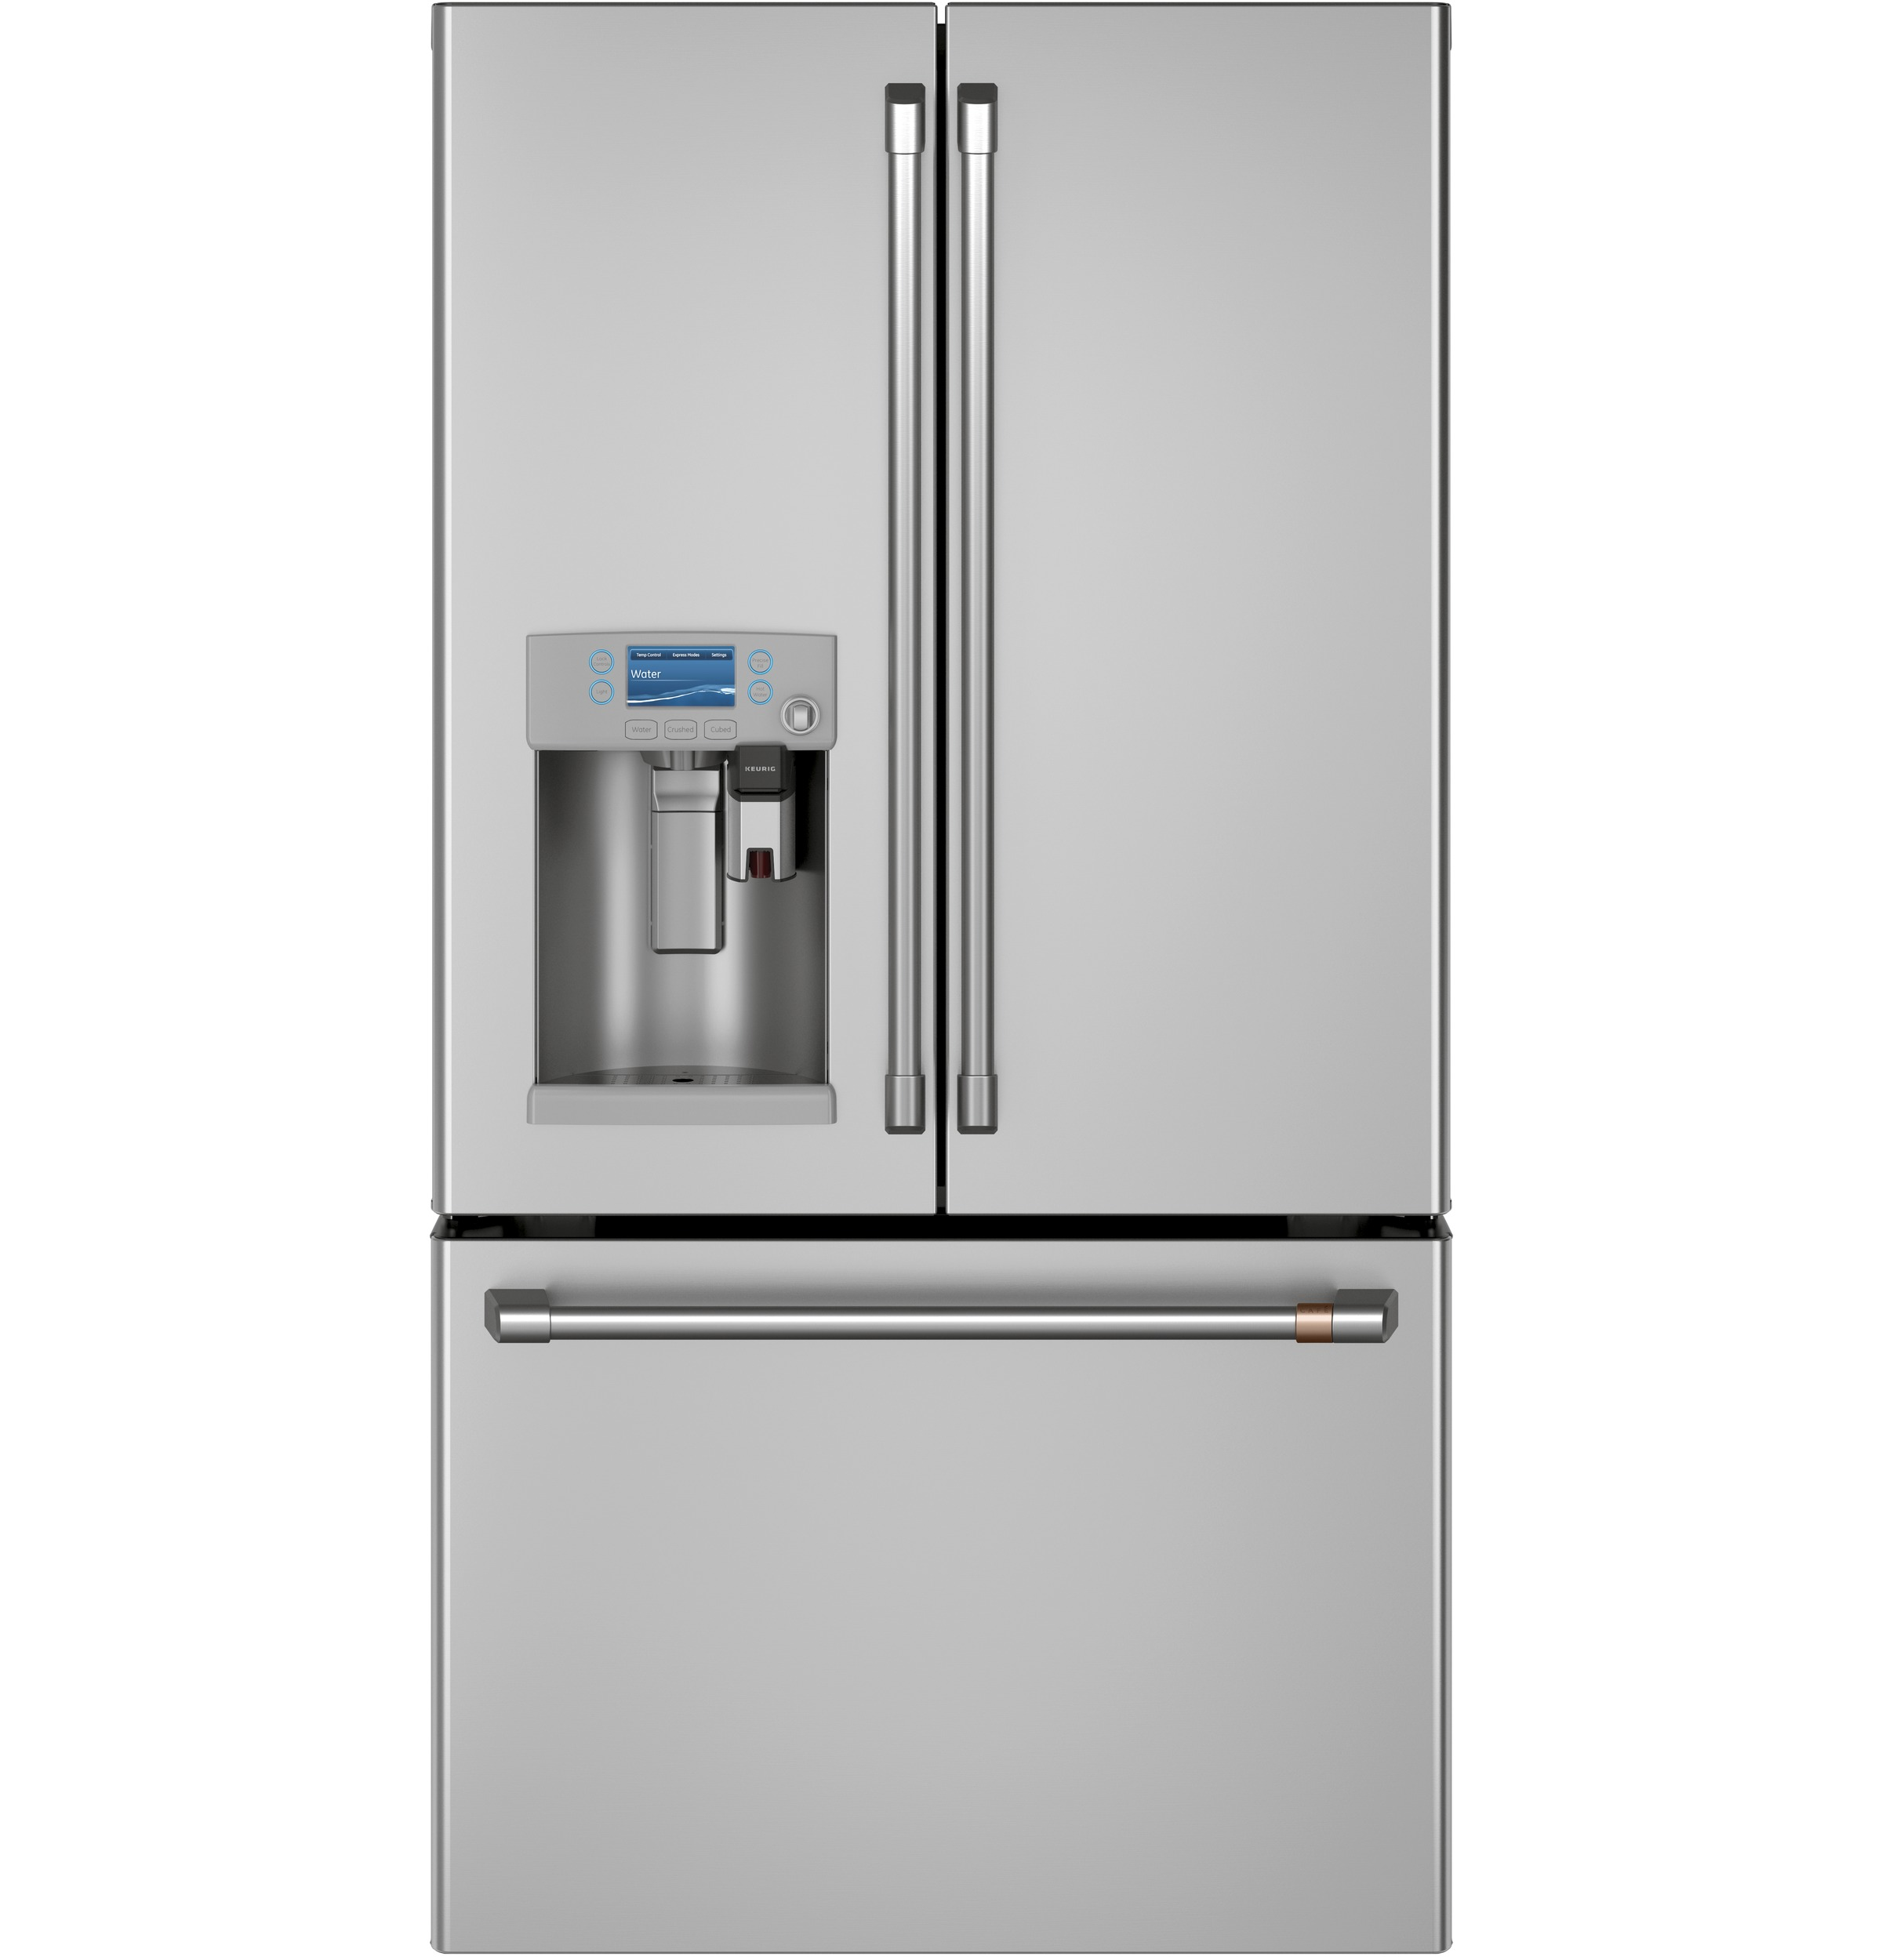 Cafe Café™ ENERGY STAR® 22.1 Cu. Ft. Smart Counter-Depth French-Door Refrigerator with Keurig® K-Cup® Brewing System